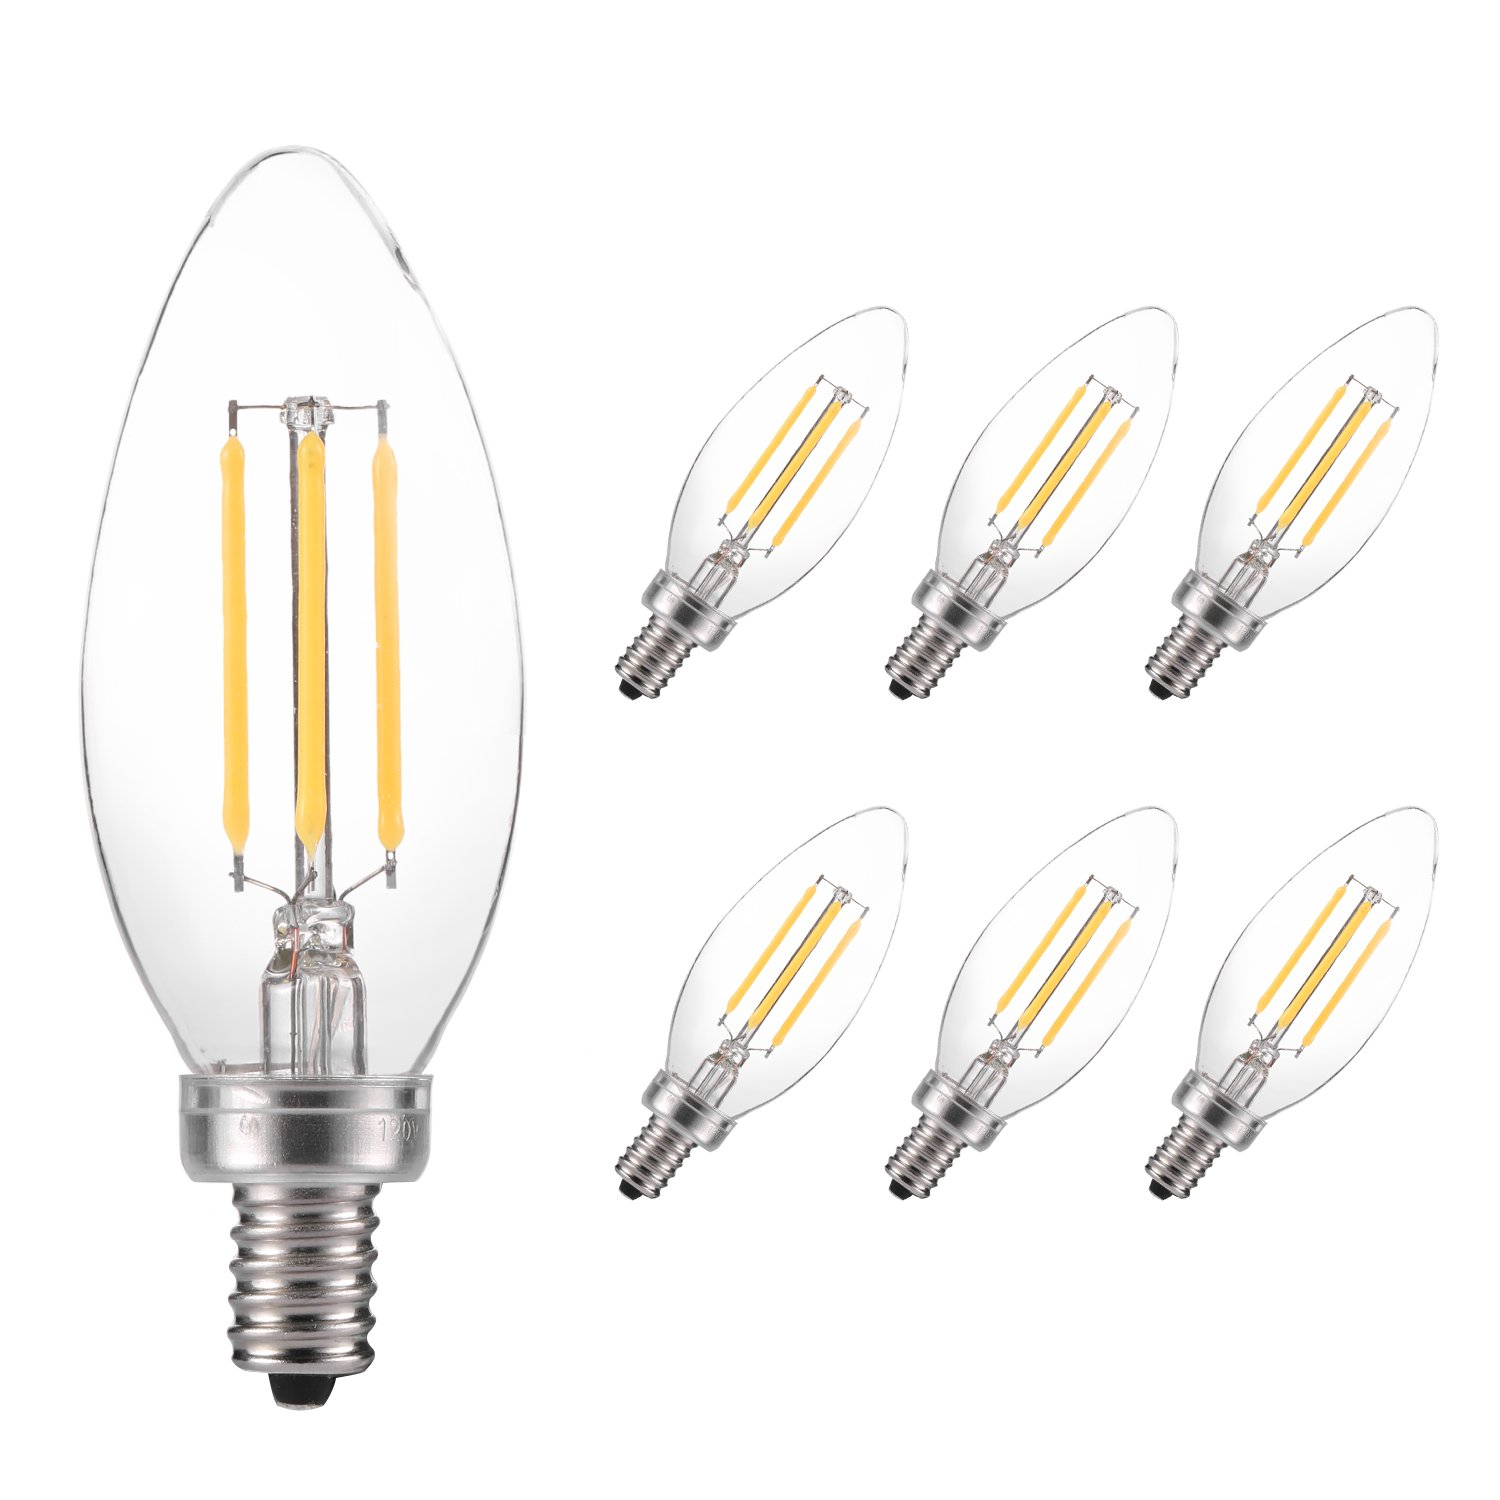 Antique LED Bulb, LESHP Filament Flame Light Bulb Candelabra Bulbs 360° Beam Angle Complied with RoHS Directive for Home,Kitchen,Dining Room,Bedroom,Living Room (5W-6Pack-Light Bulb)